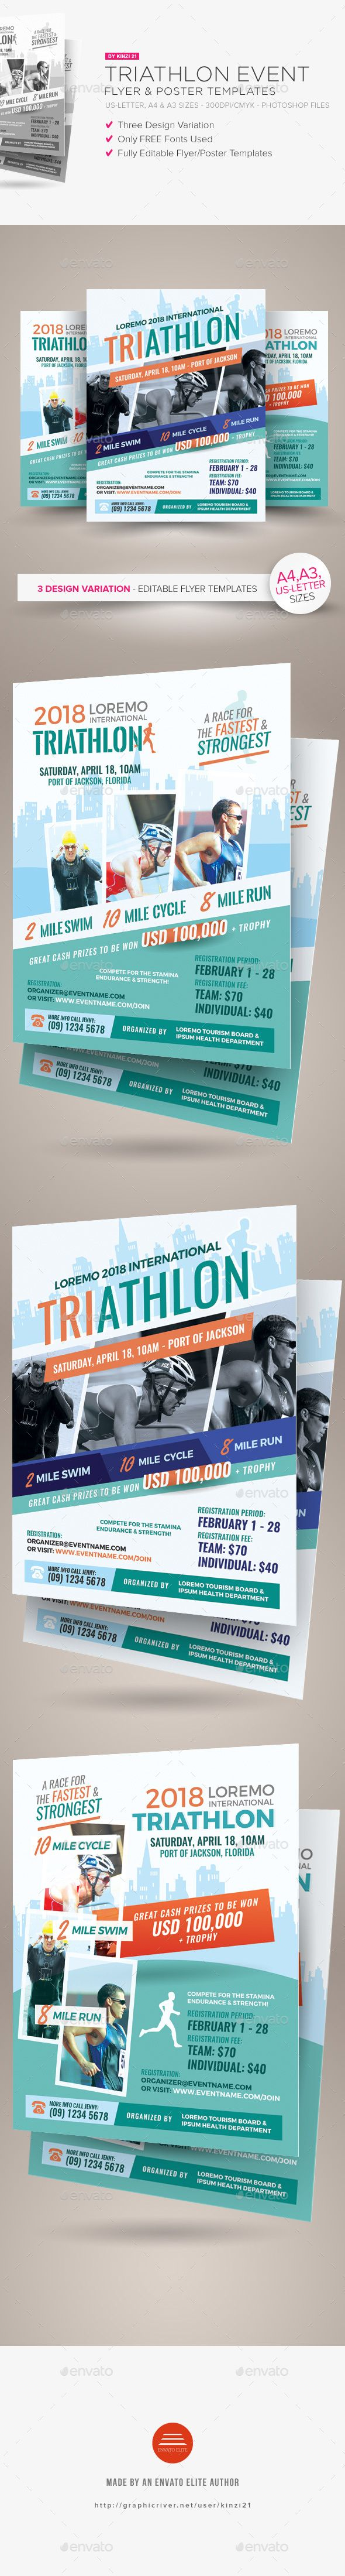 Triathlon Event Flyer and Poster Templates by kinzi21 Triathlon Event Flyer and Poster Templates A flyer template pack perfect for promoting Triathlon race event. Available in three de